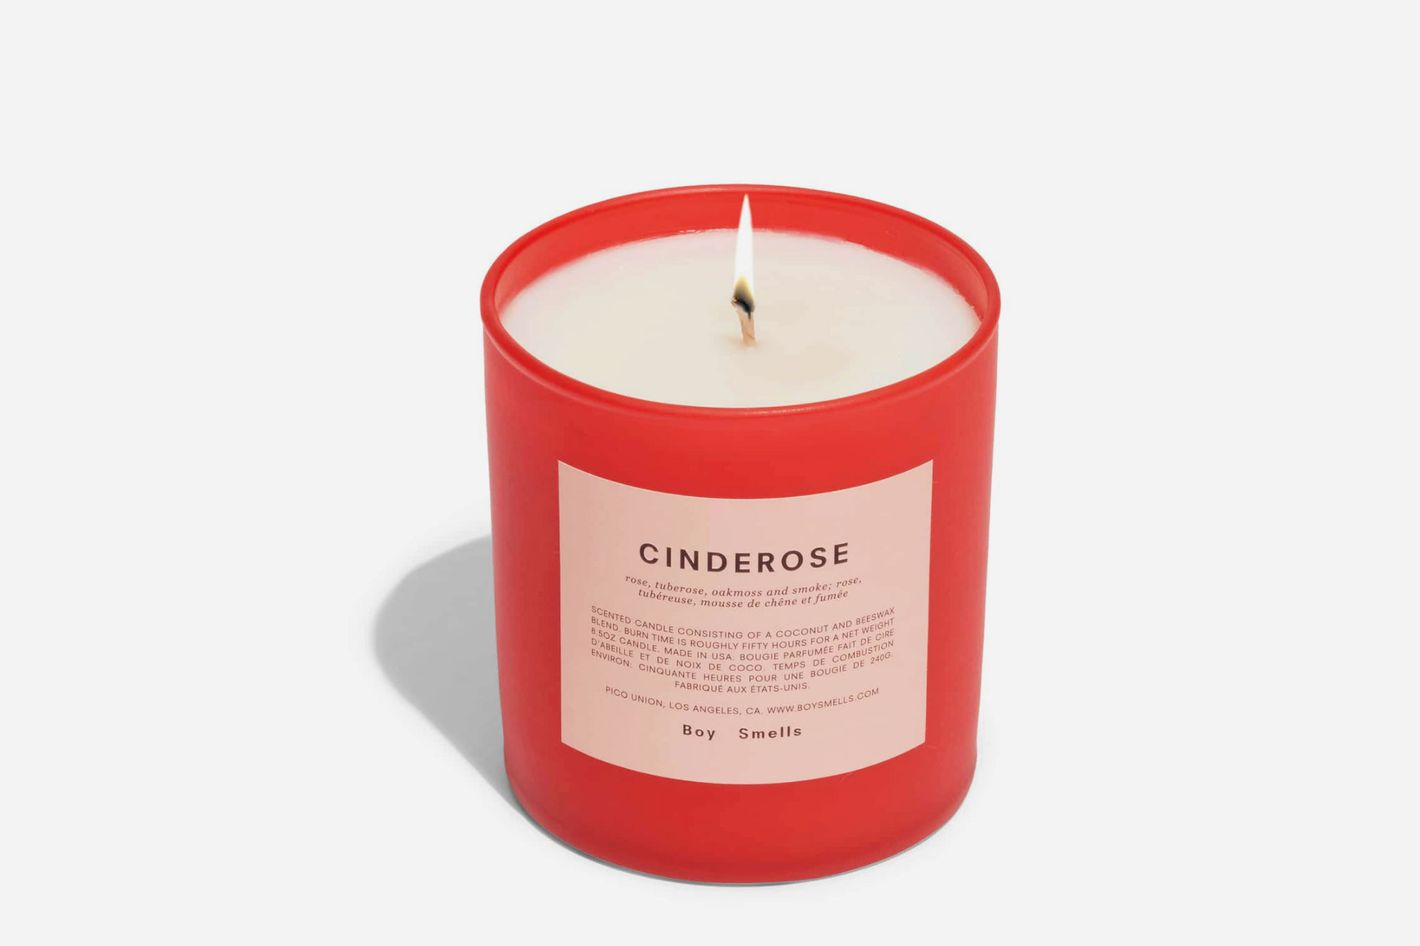 Boy Smells Cinderose Scented Candle